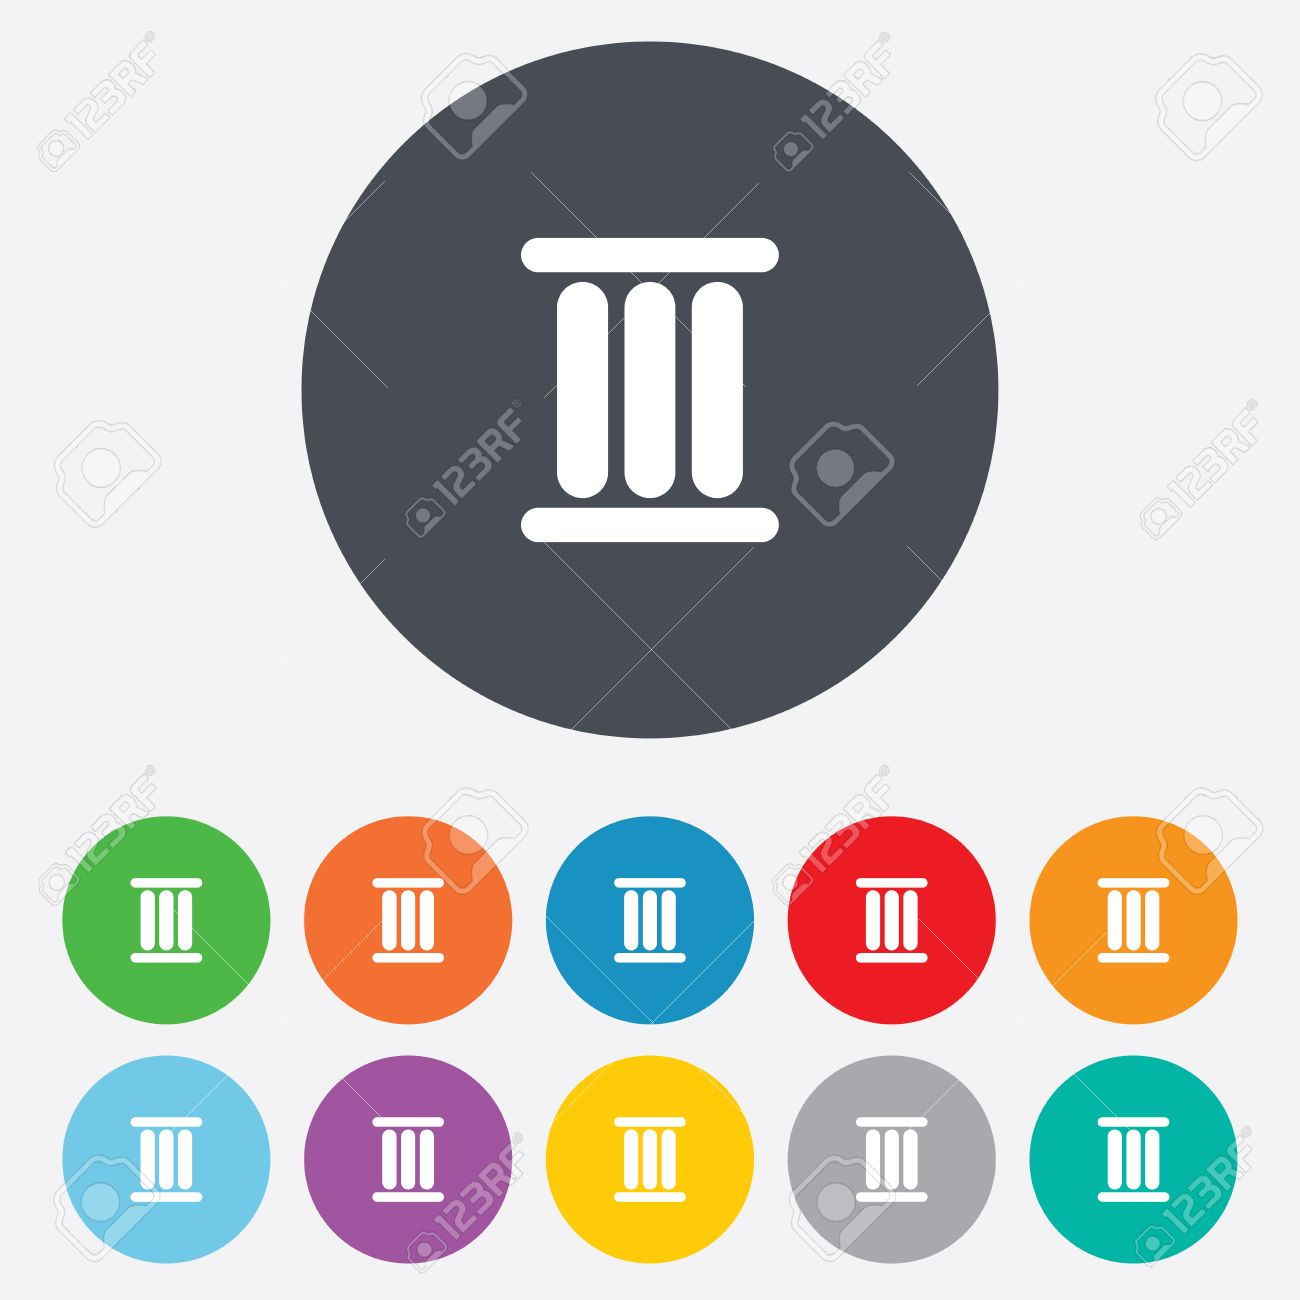 Worksheet Three In Roman Numeral roman numeral three sign icon number symbol round colourful 11 buttons